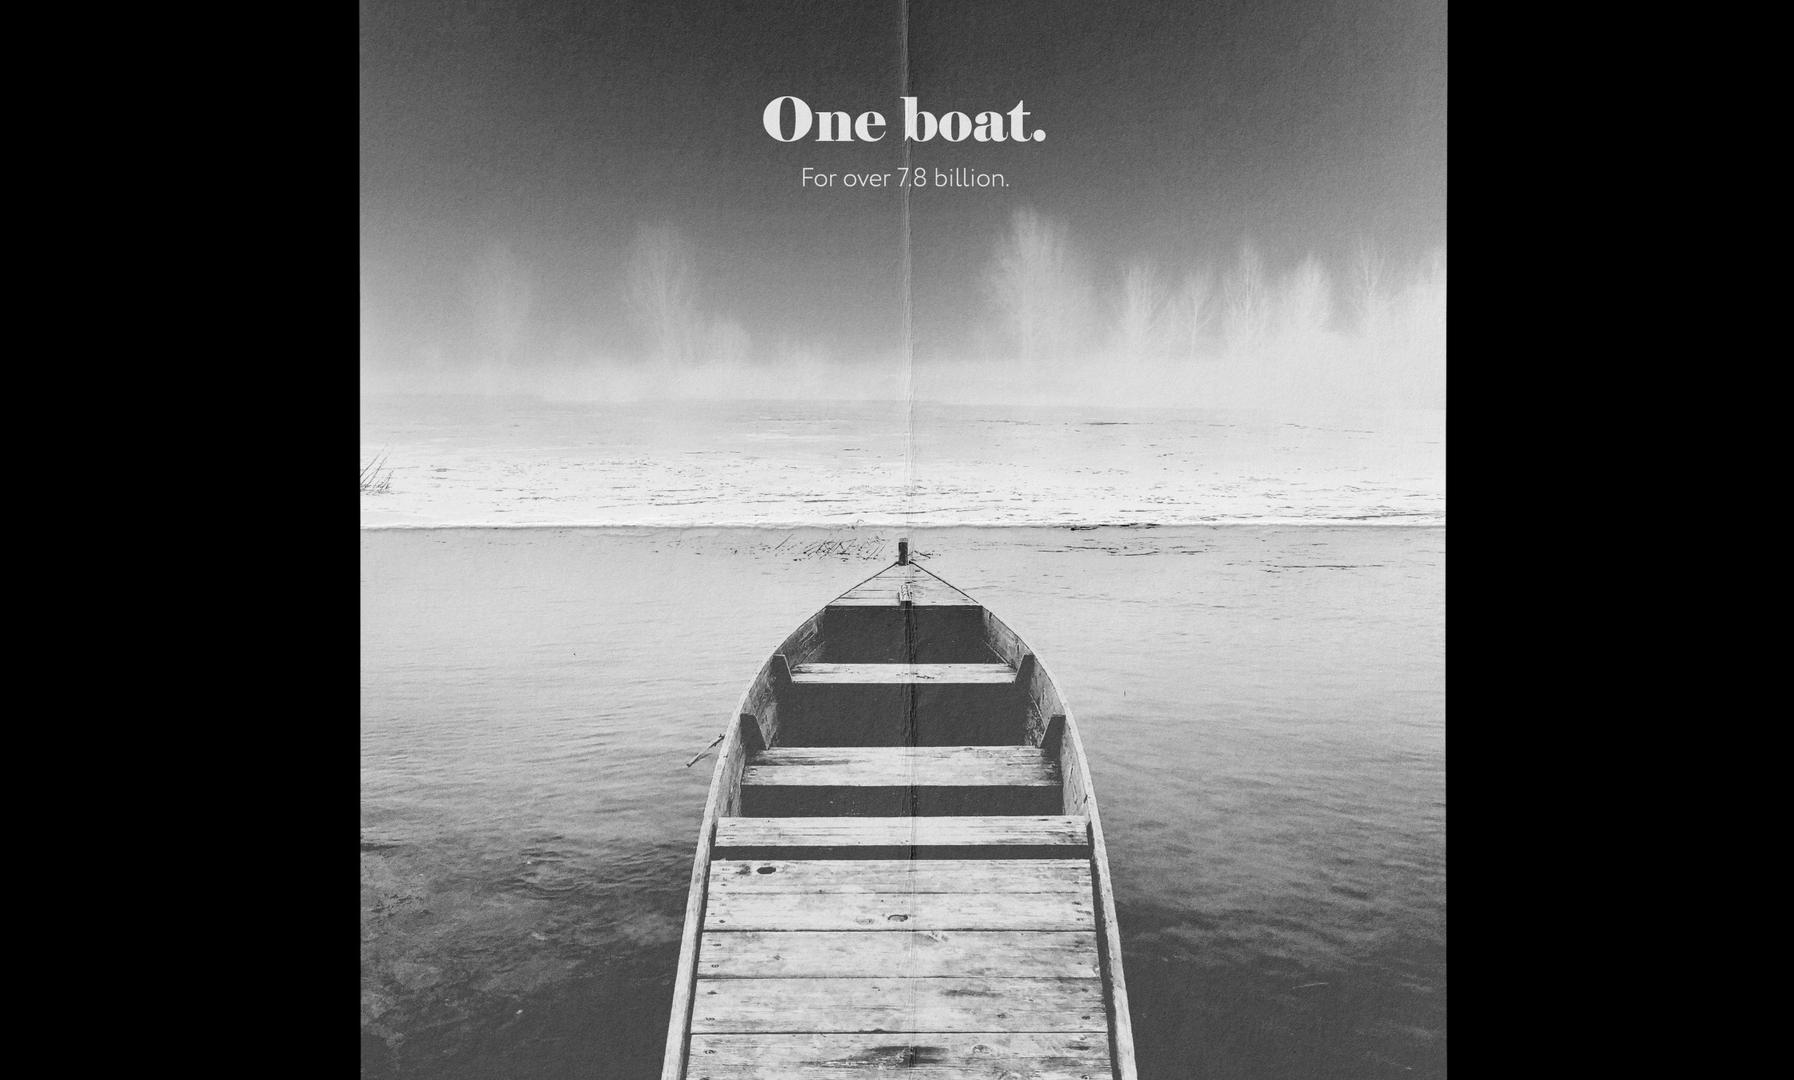 One boat.